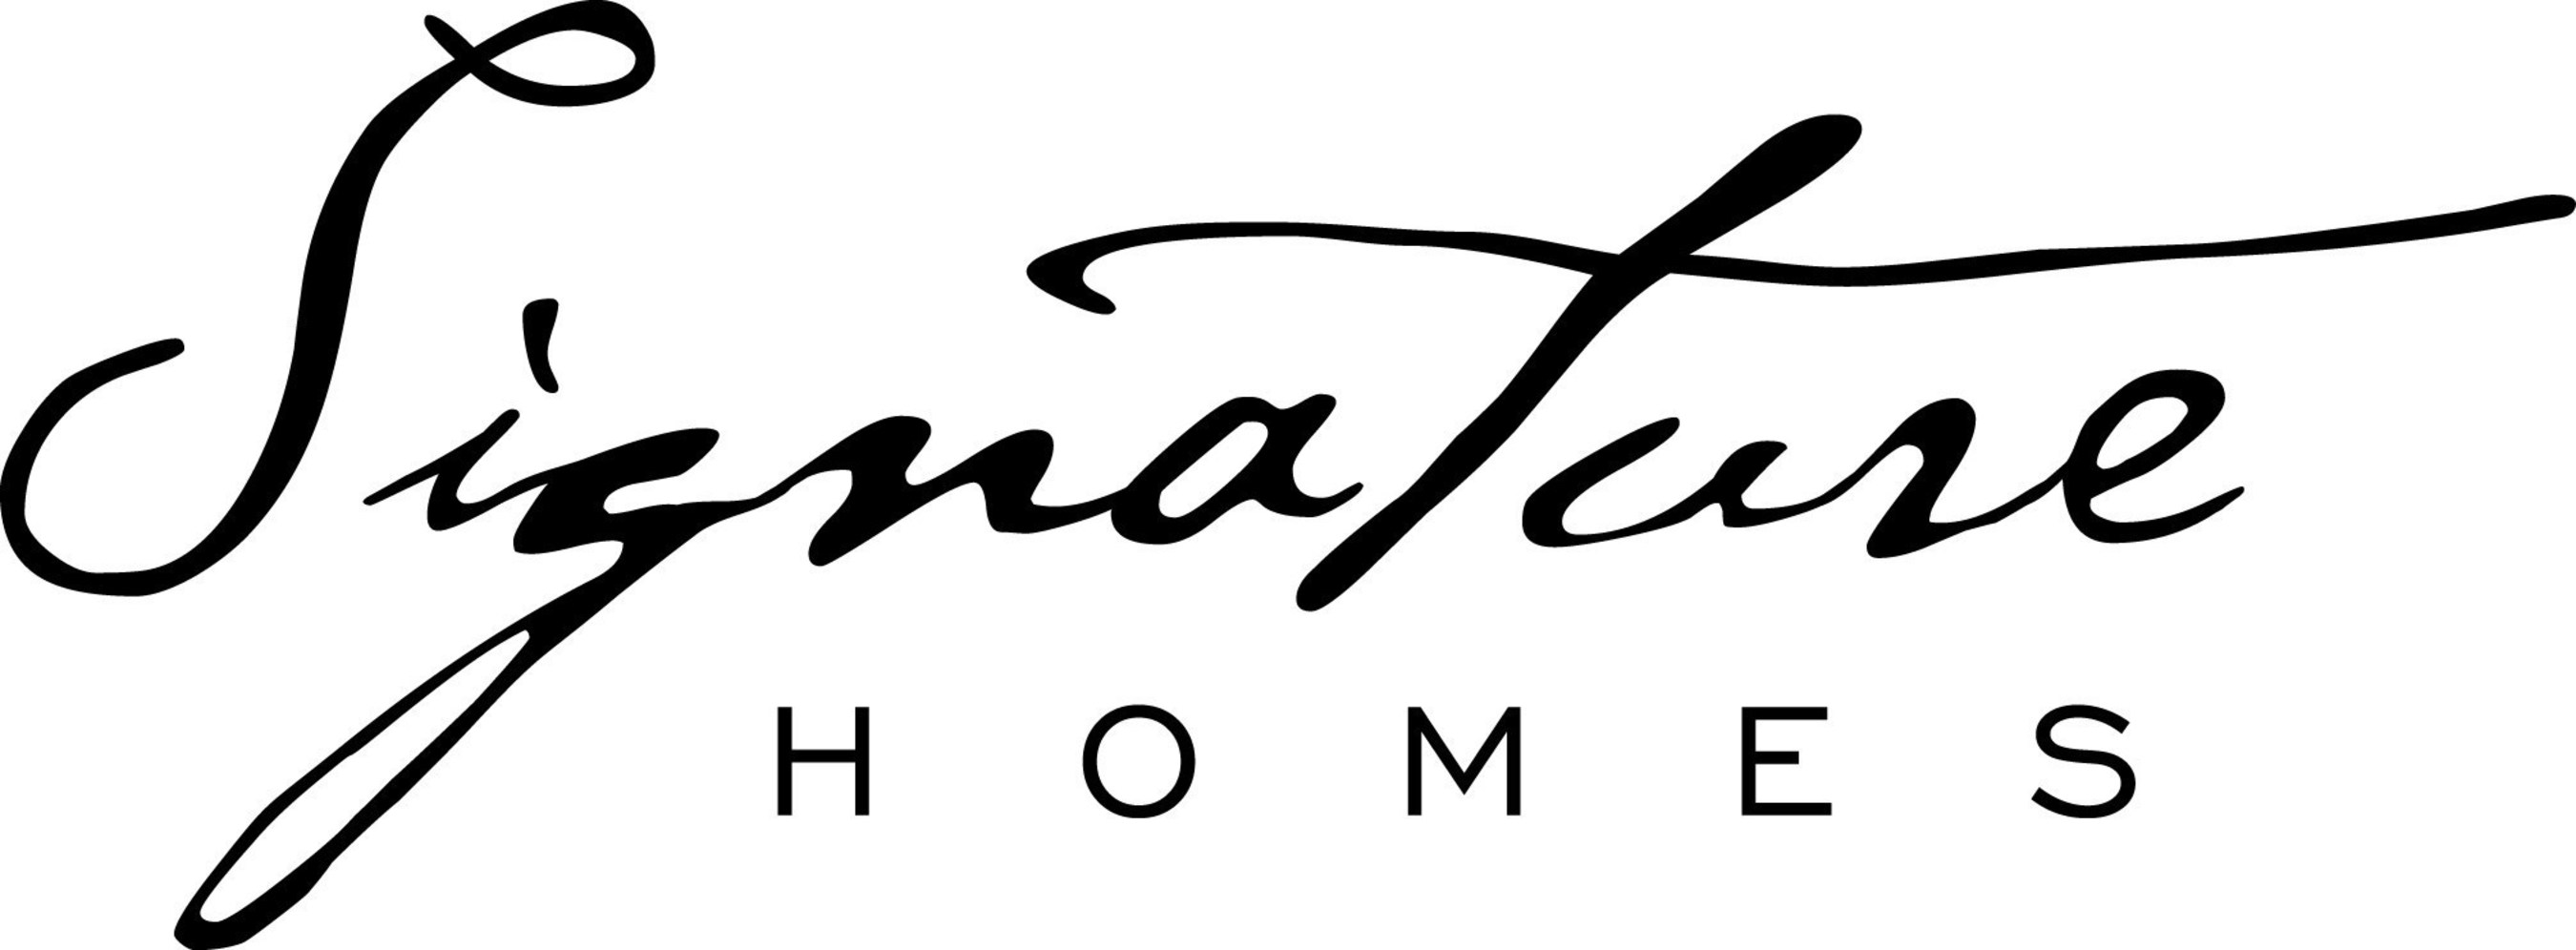 Signature Homes Announces Groundbreaking Ceremony For The